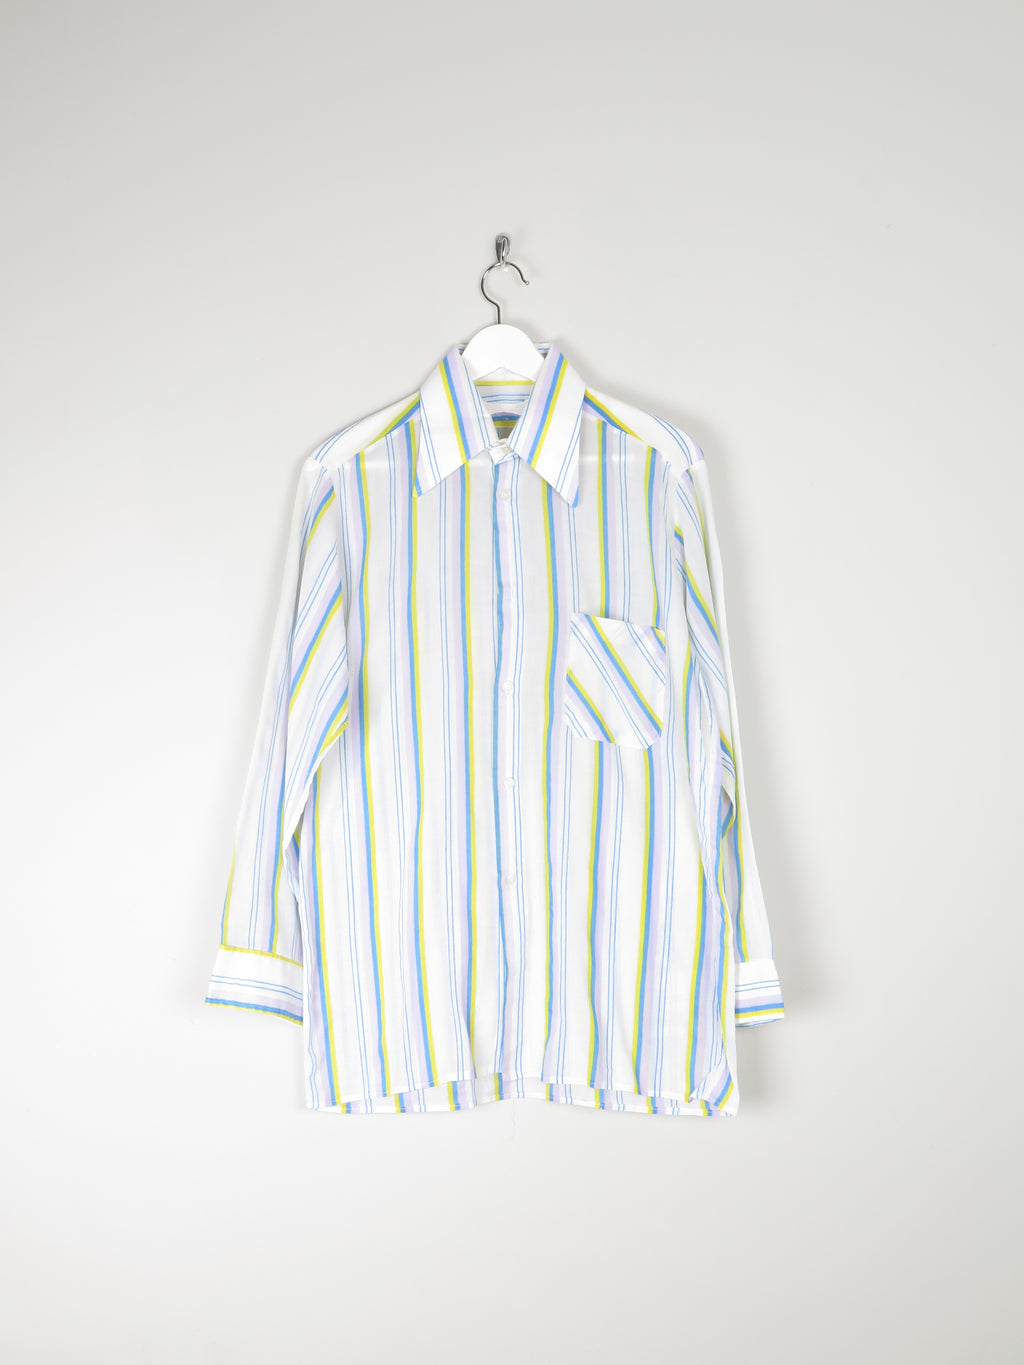 Men's Bright 1970s Colourful Striped Shirt M